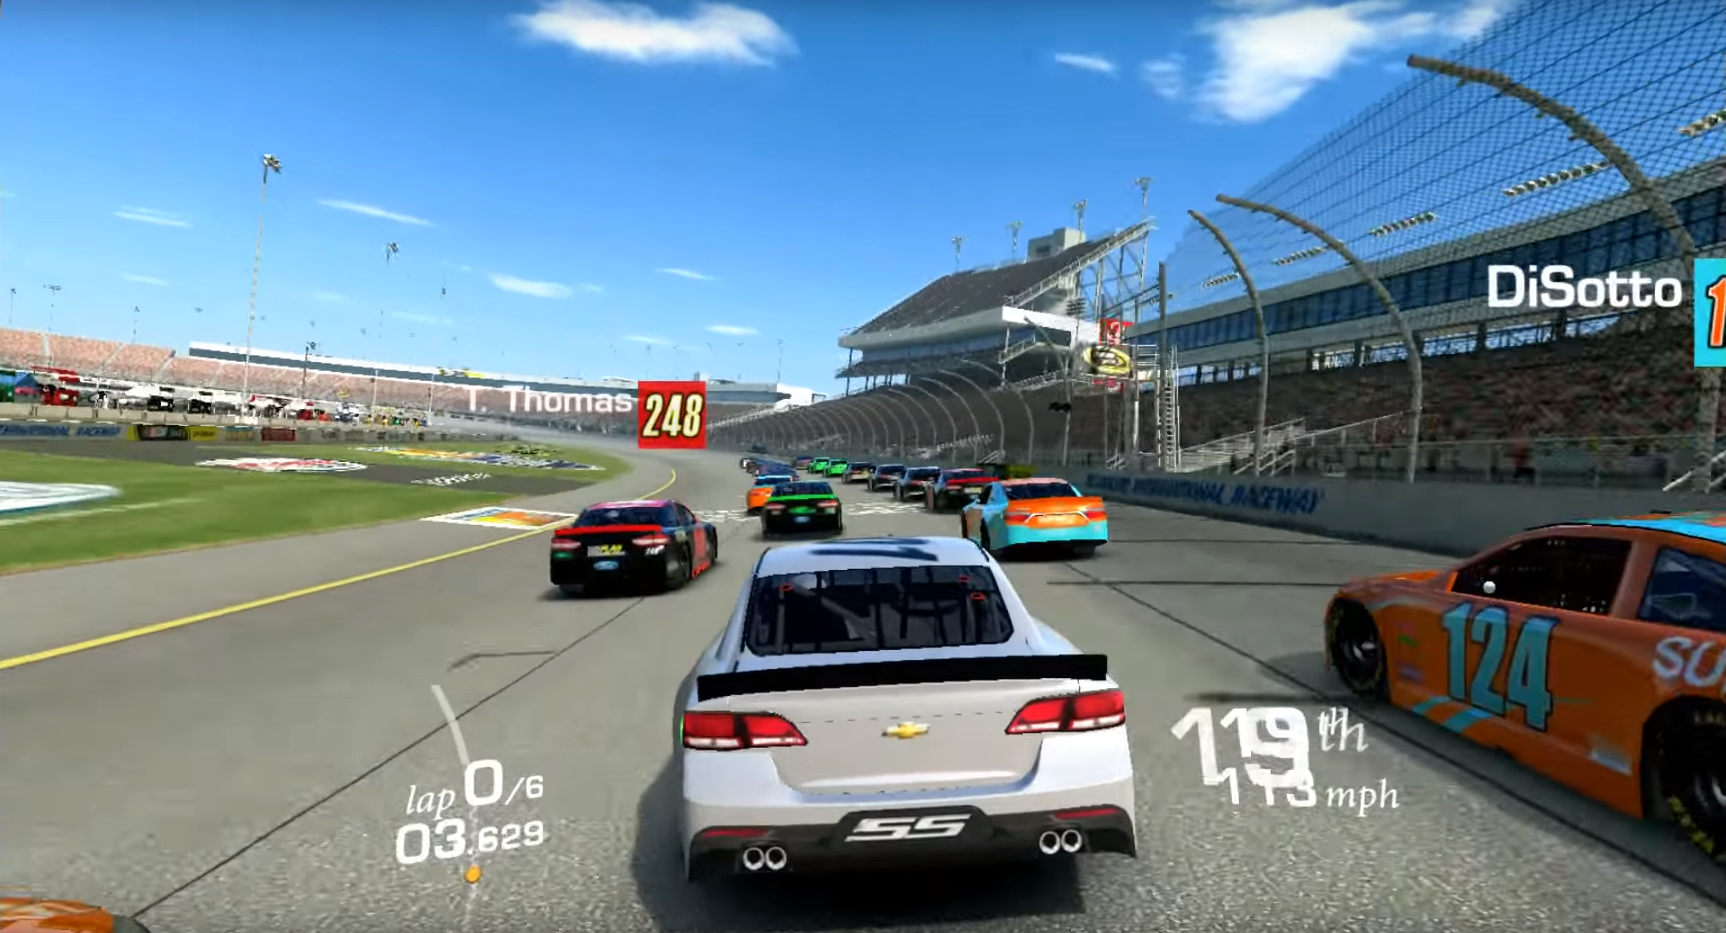 Cube iWork 10 Real racing gameplay, bunch of cars racing on a bright and clear day.